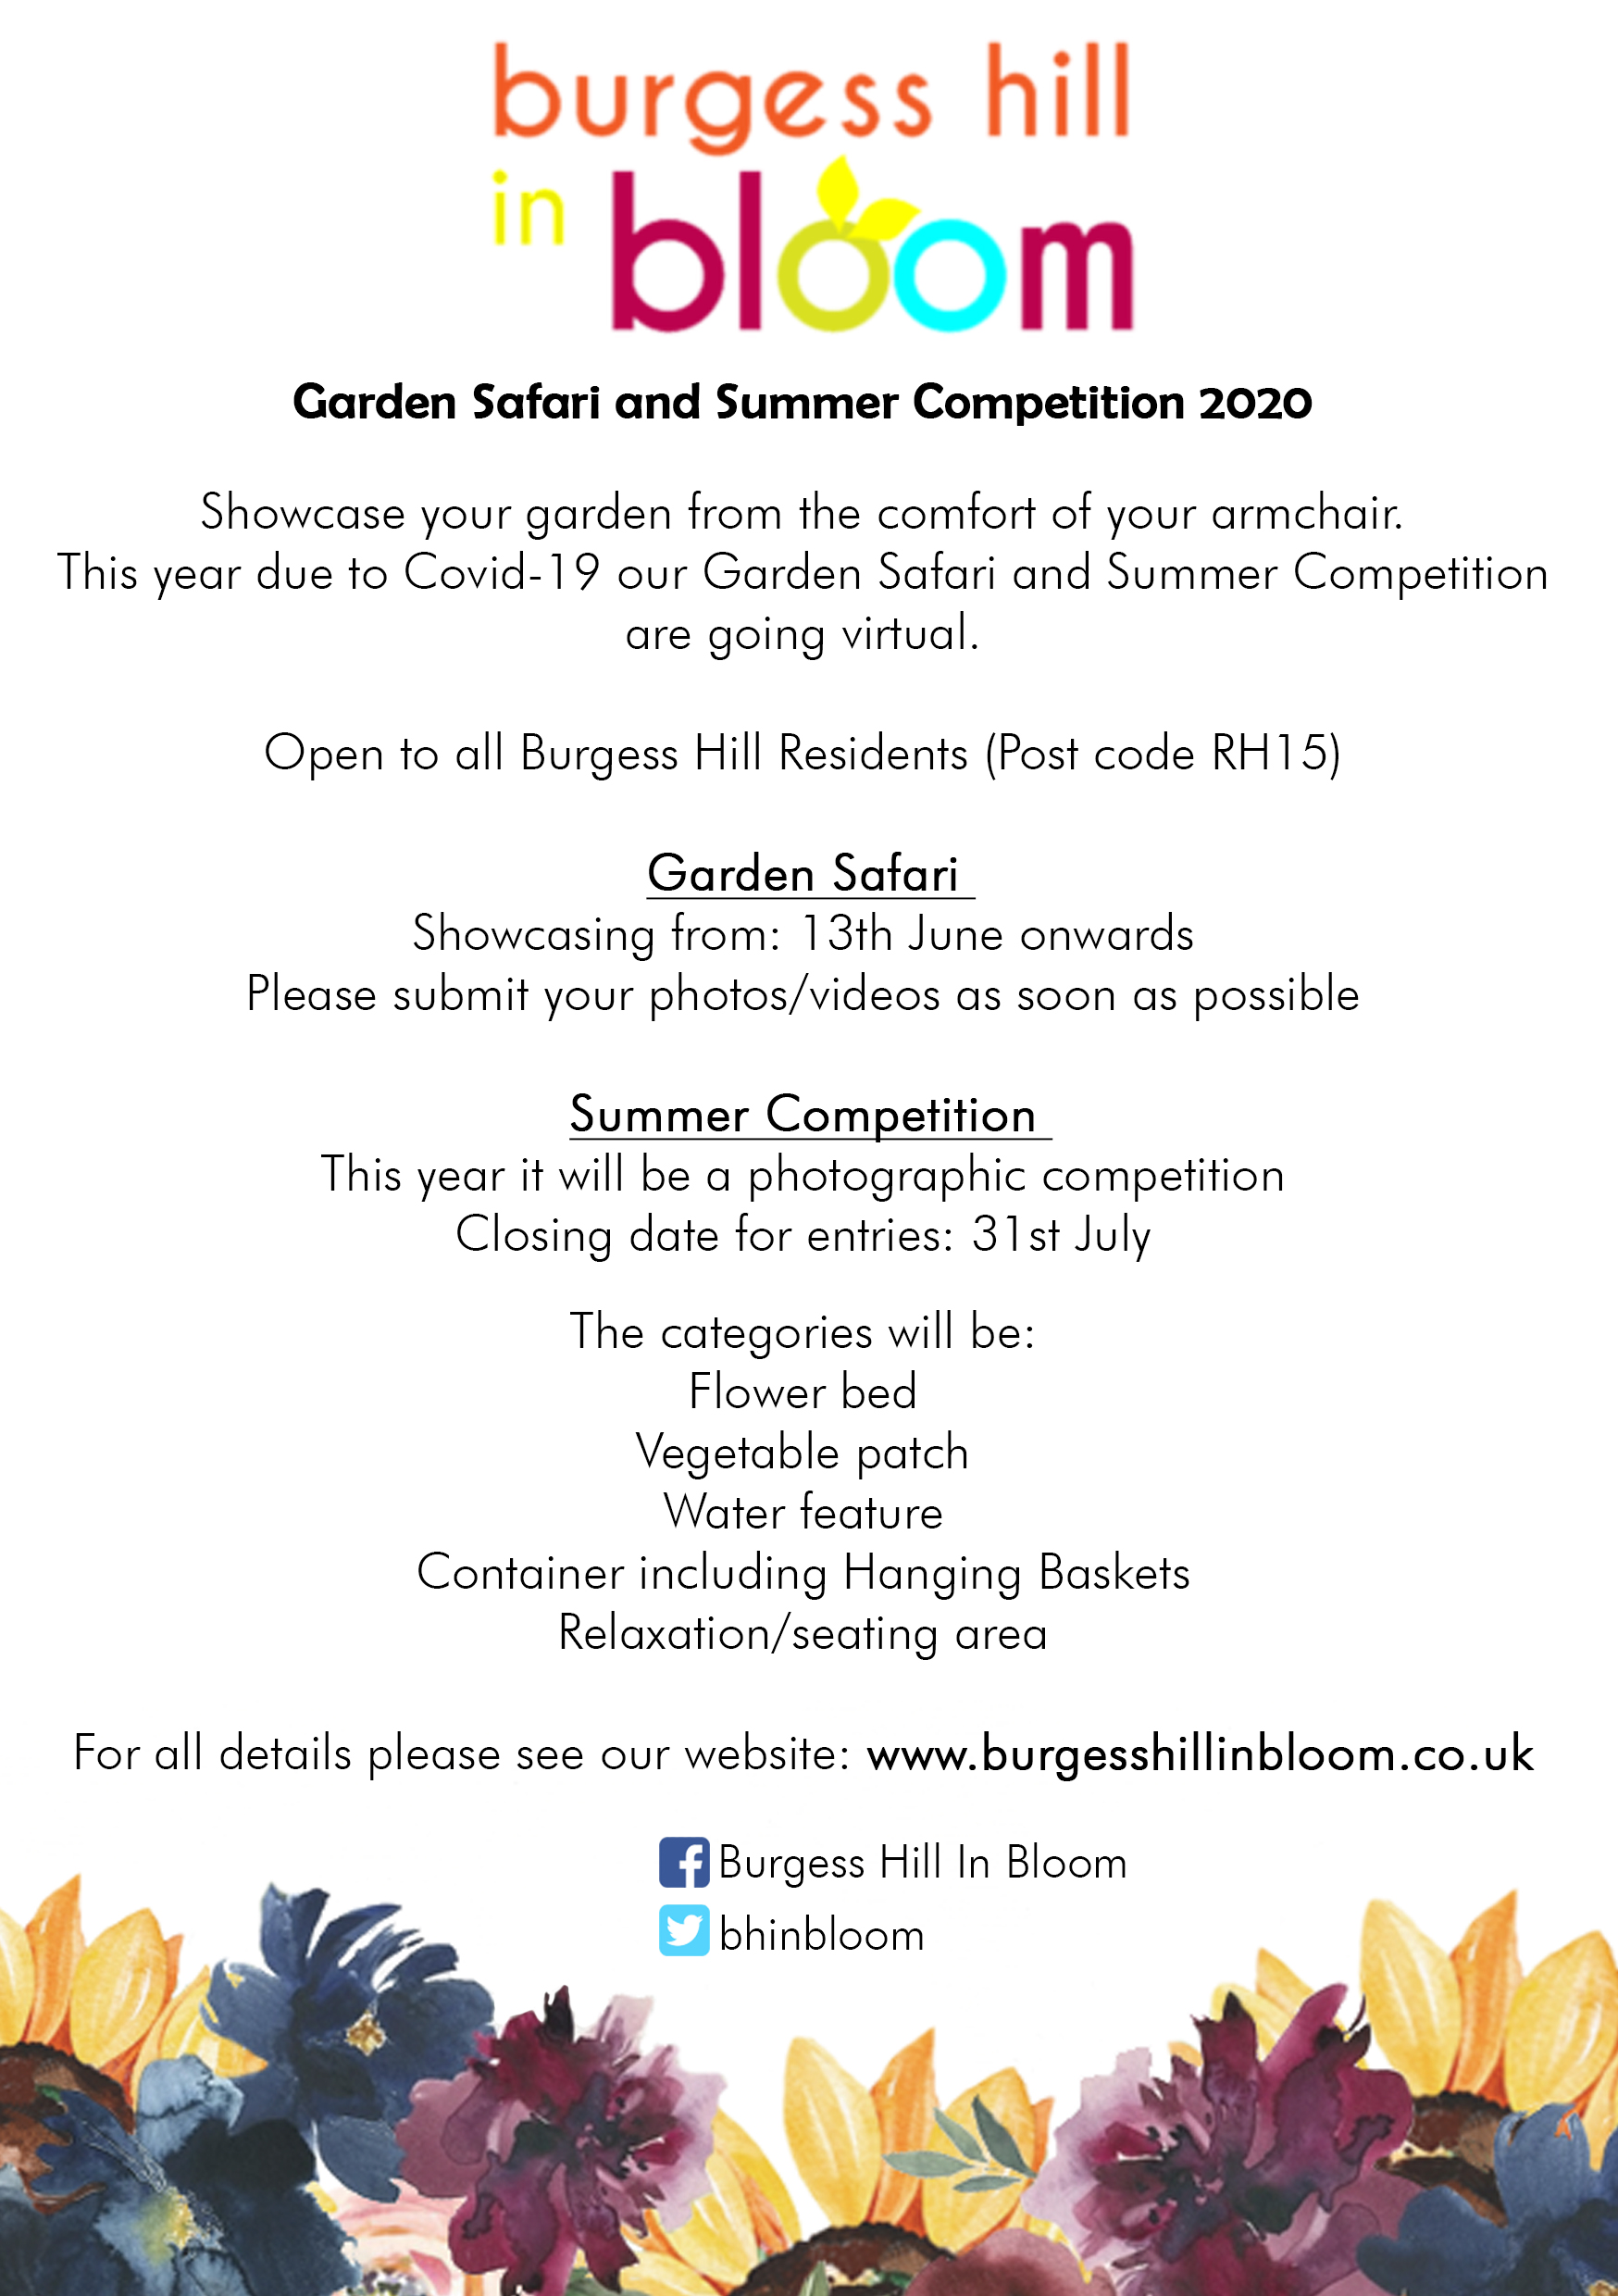 Burgess Hill in Bloom – Garden Safari and Summer Competition